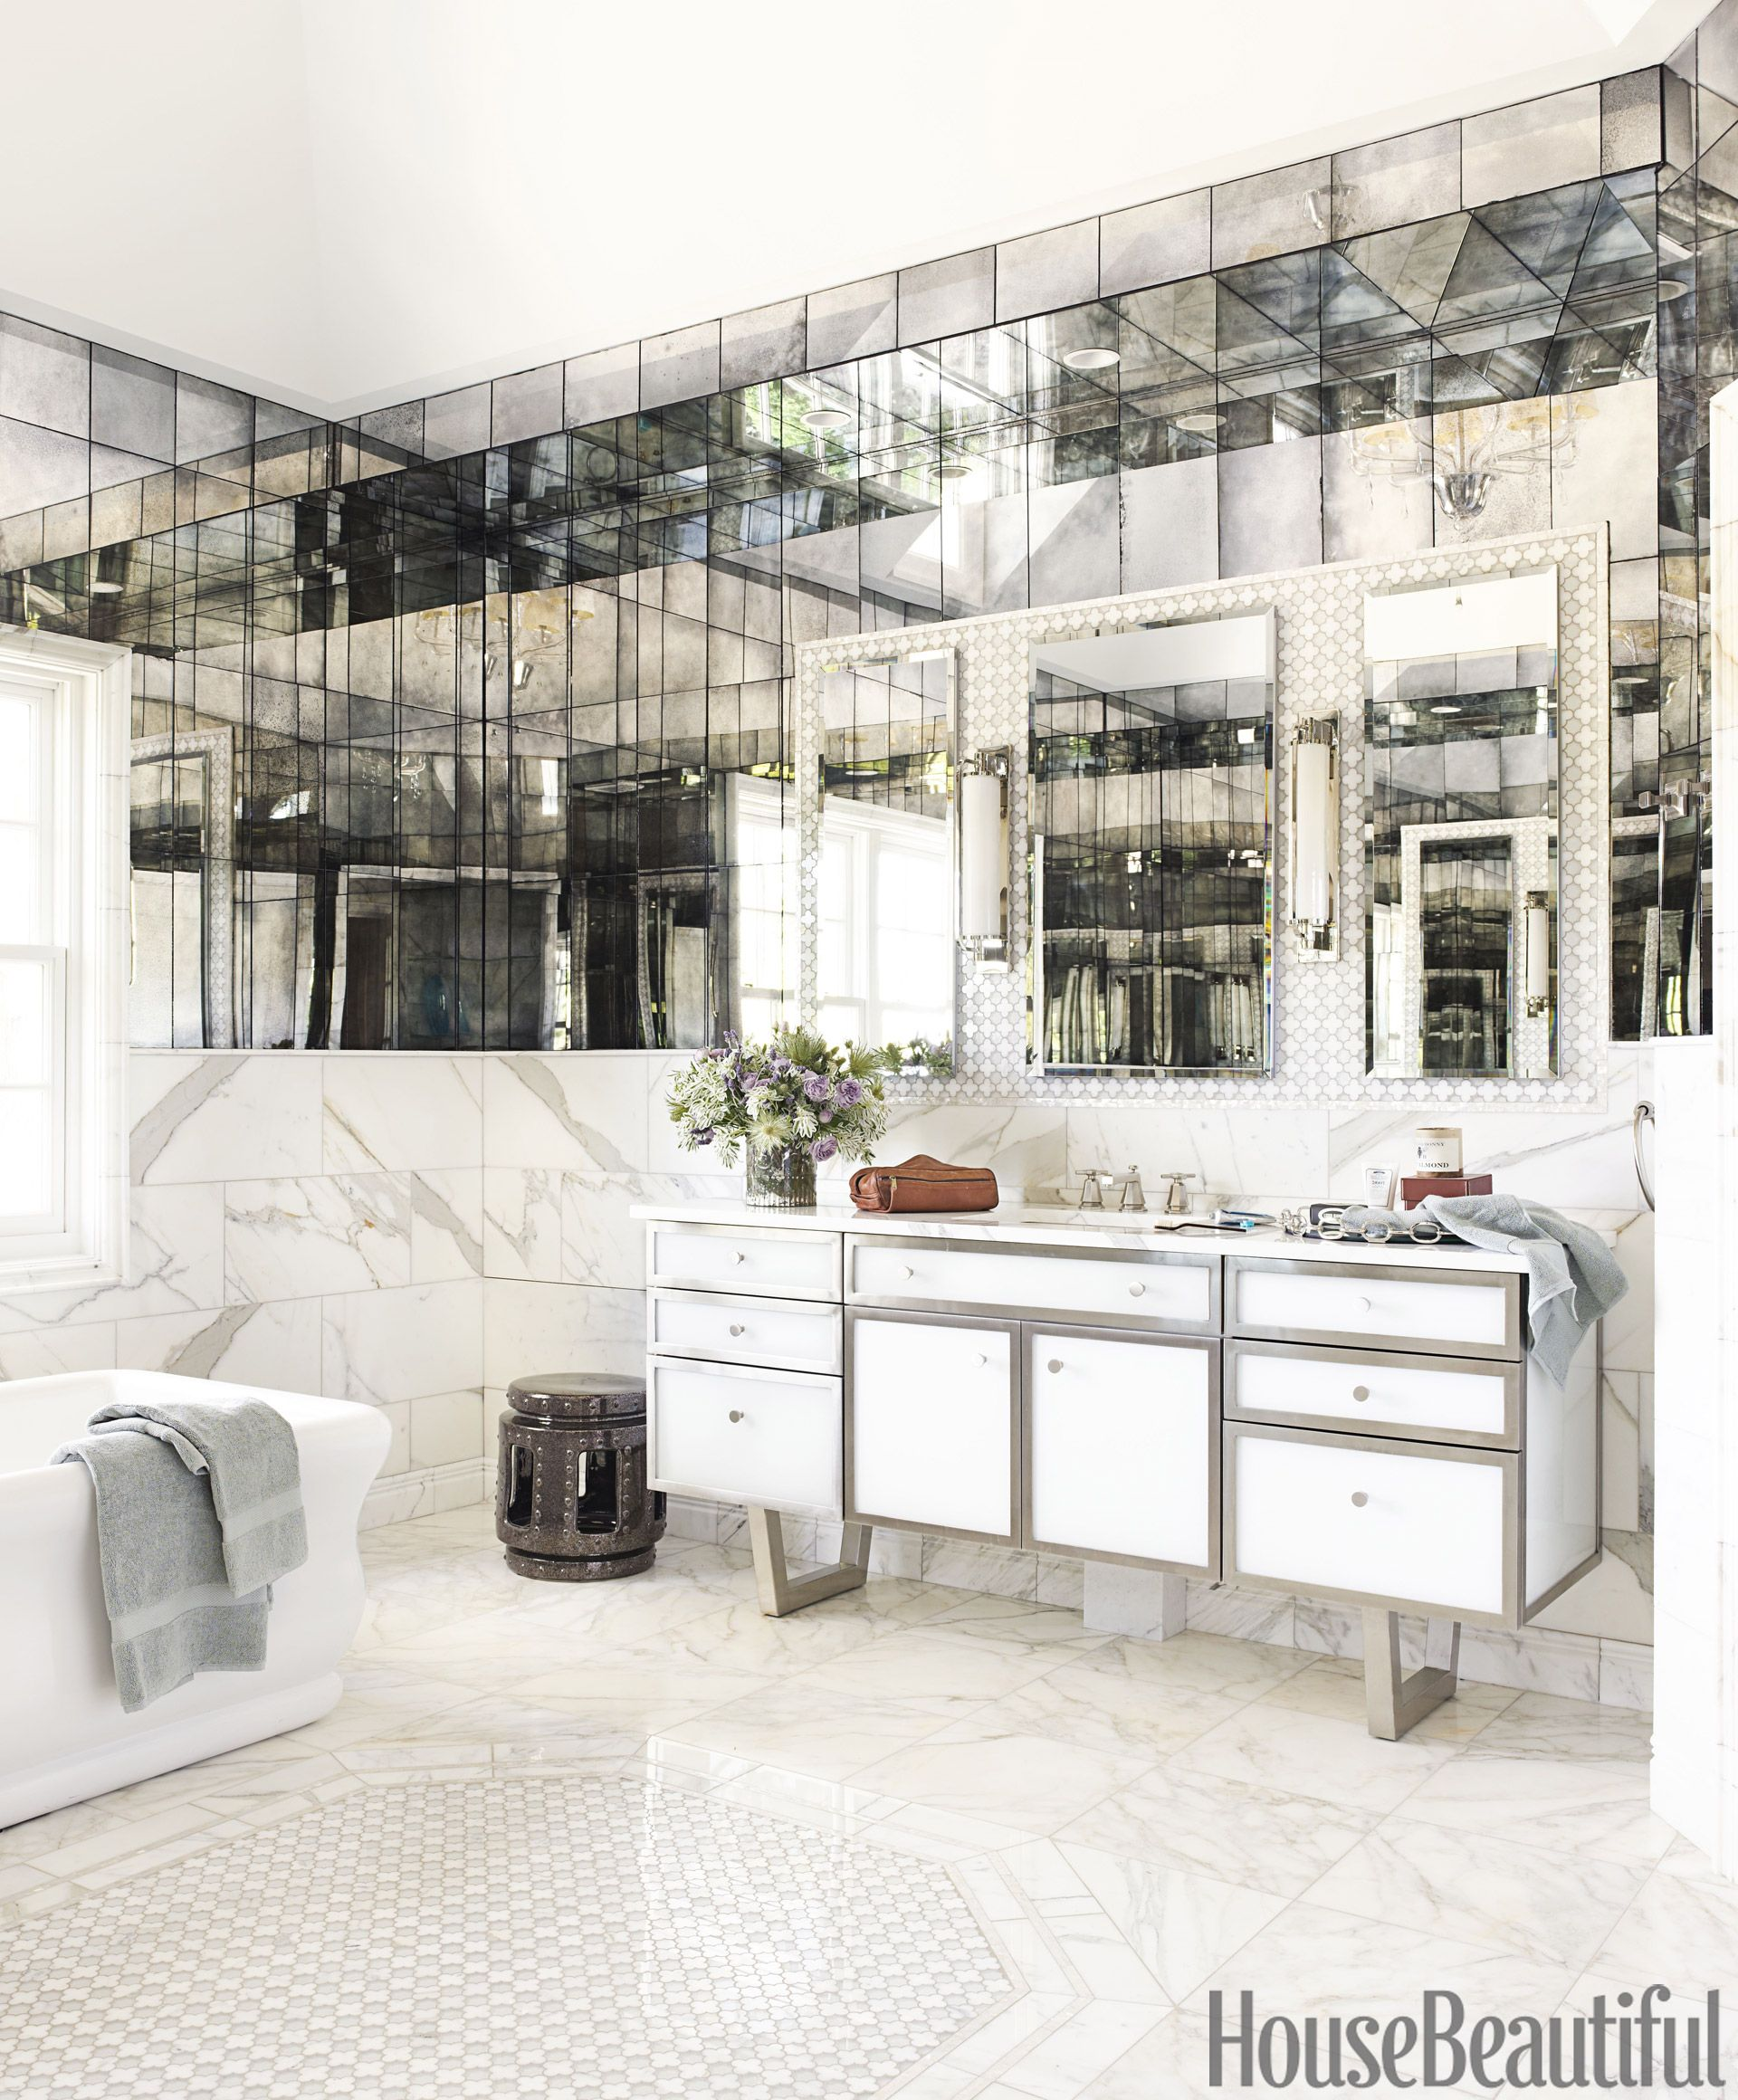 60 Best Bathroom Designs - Photos of Beautiful Bathroom Ideas to Try